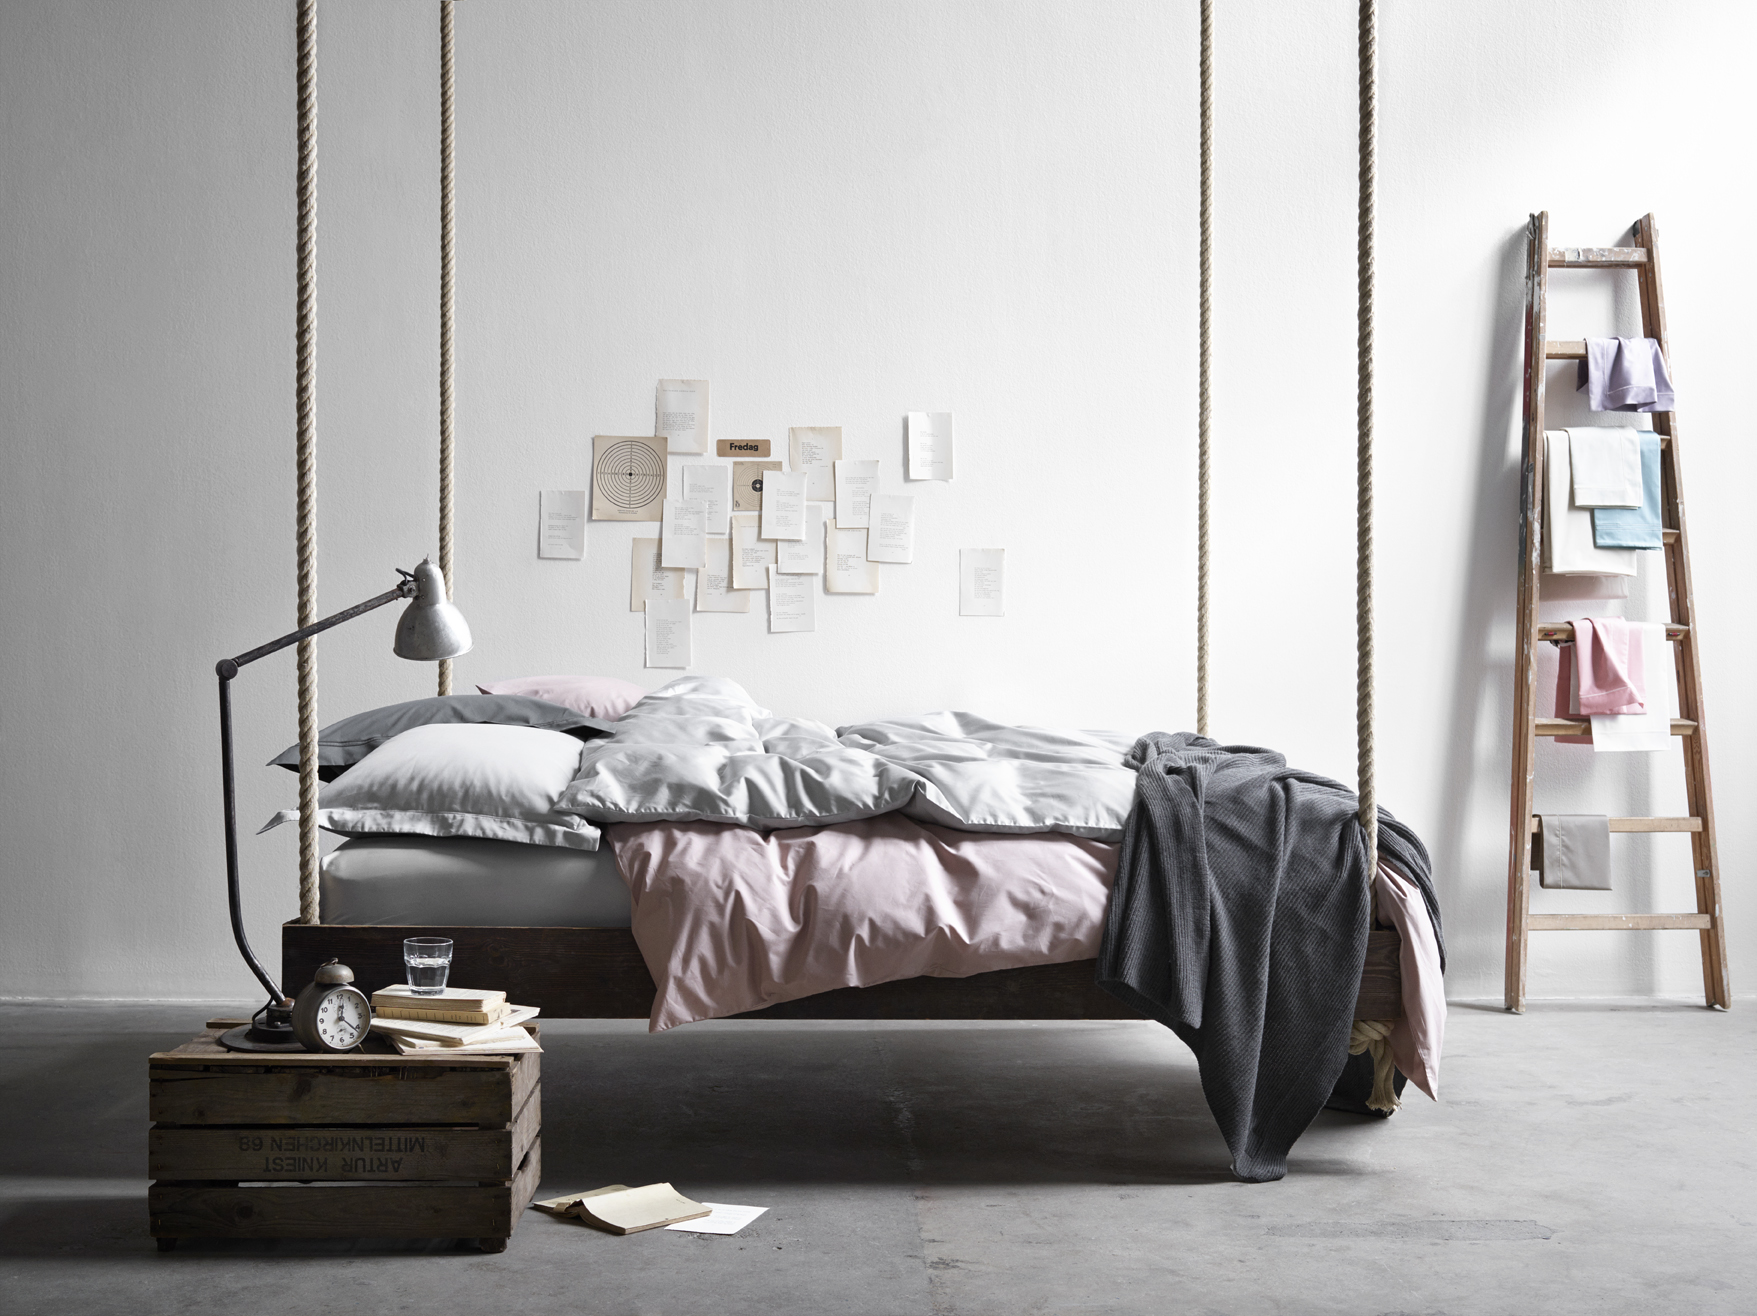 Hanging bed coco lapine designcoco lapine design for Hanging bed indoor